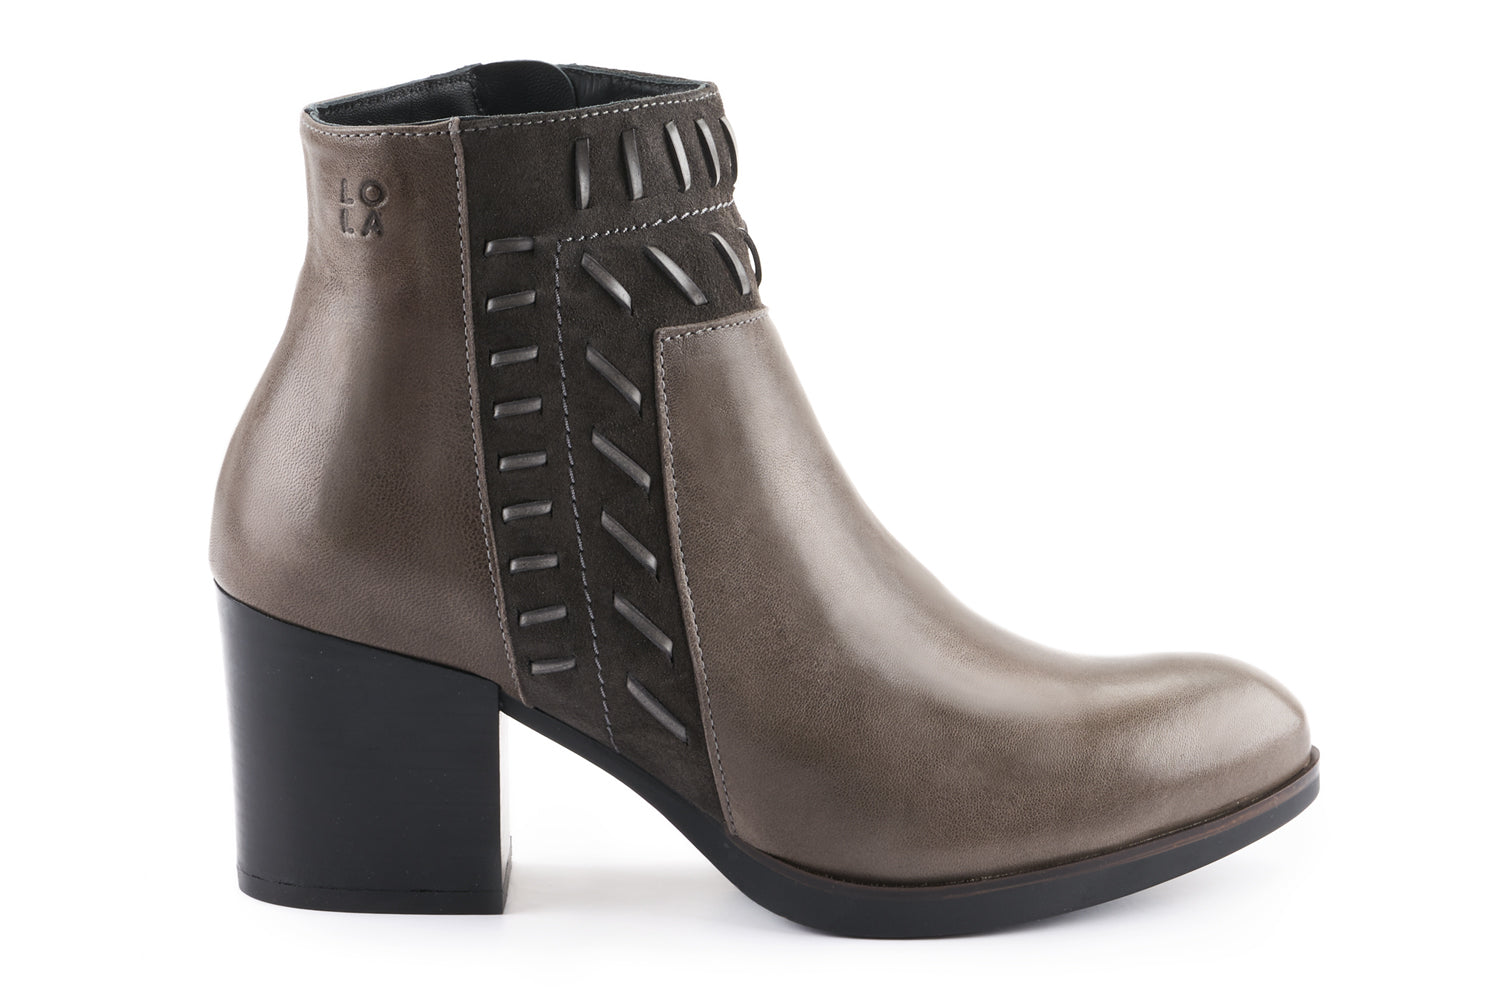 Sienna Leather Embellished Ankle Boot - Charcoal Grey